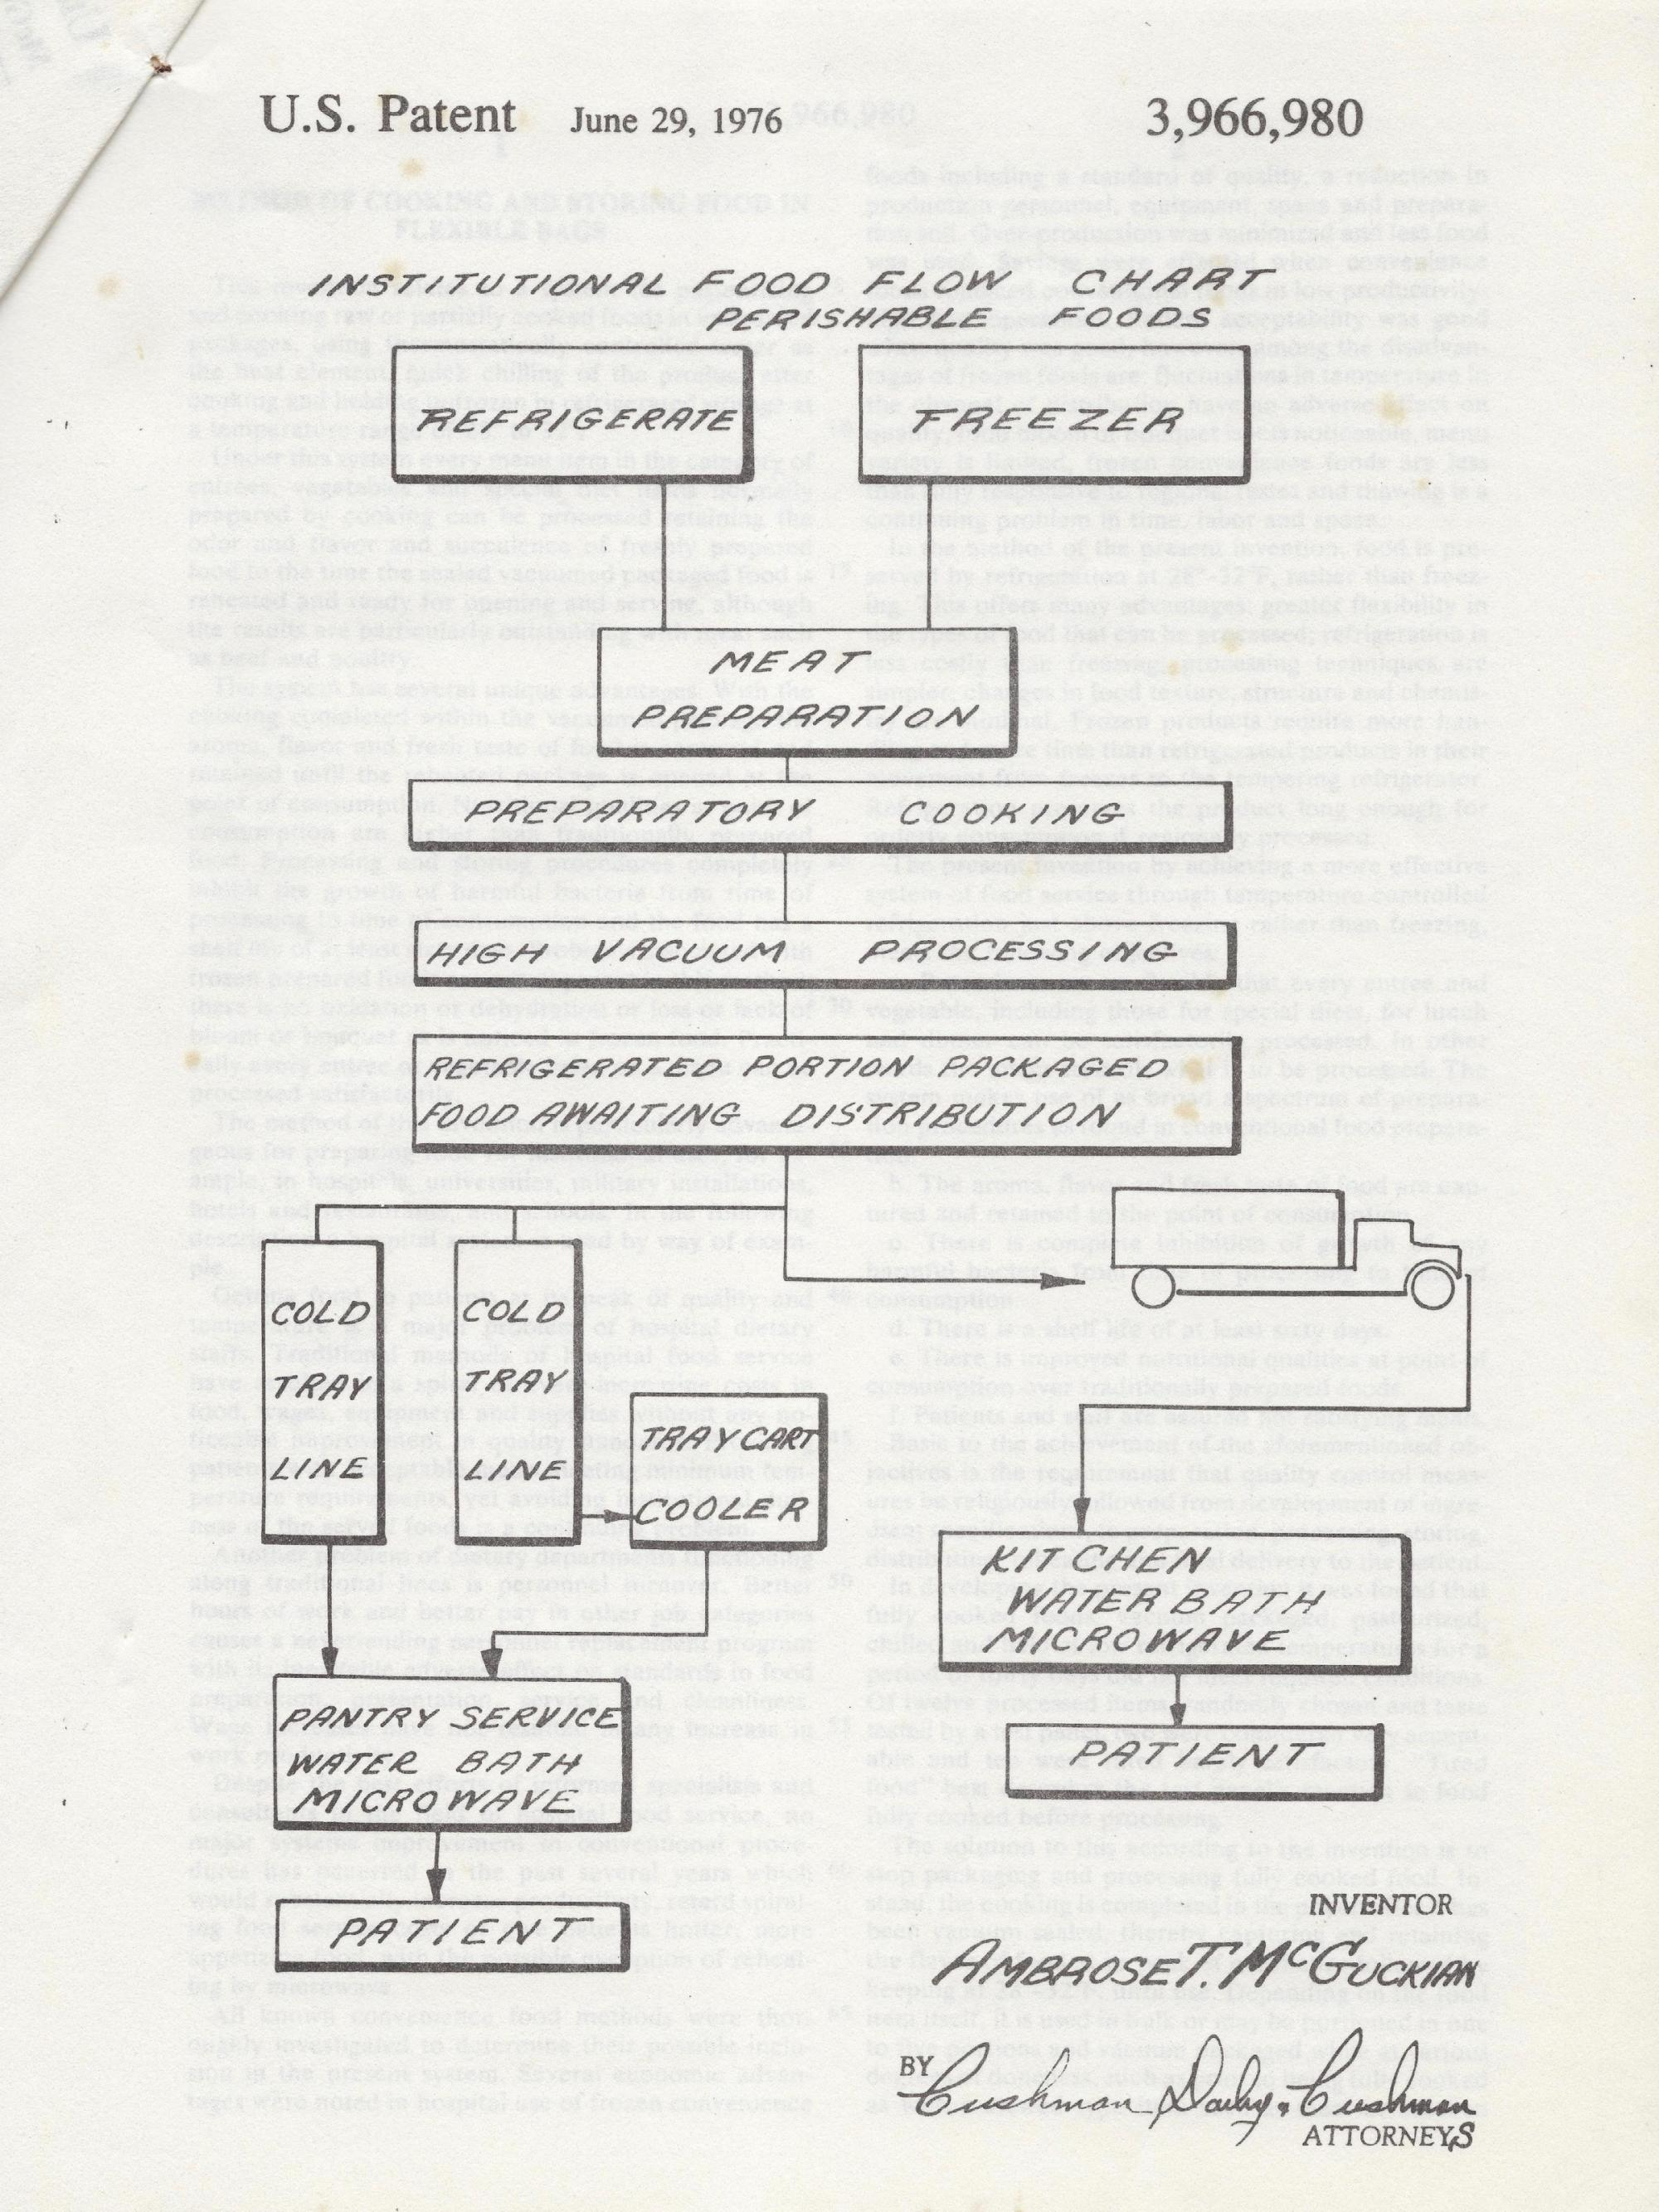 hight resolution of ambrose mcguckian created a flowchart to illustrate the sequence of hospital food service from storage to preparation to patient for his patent